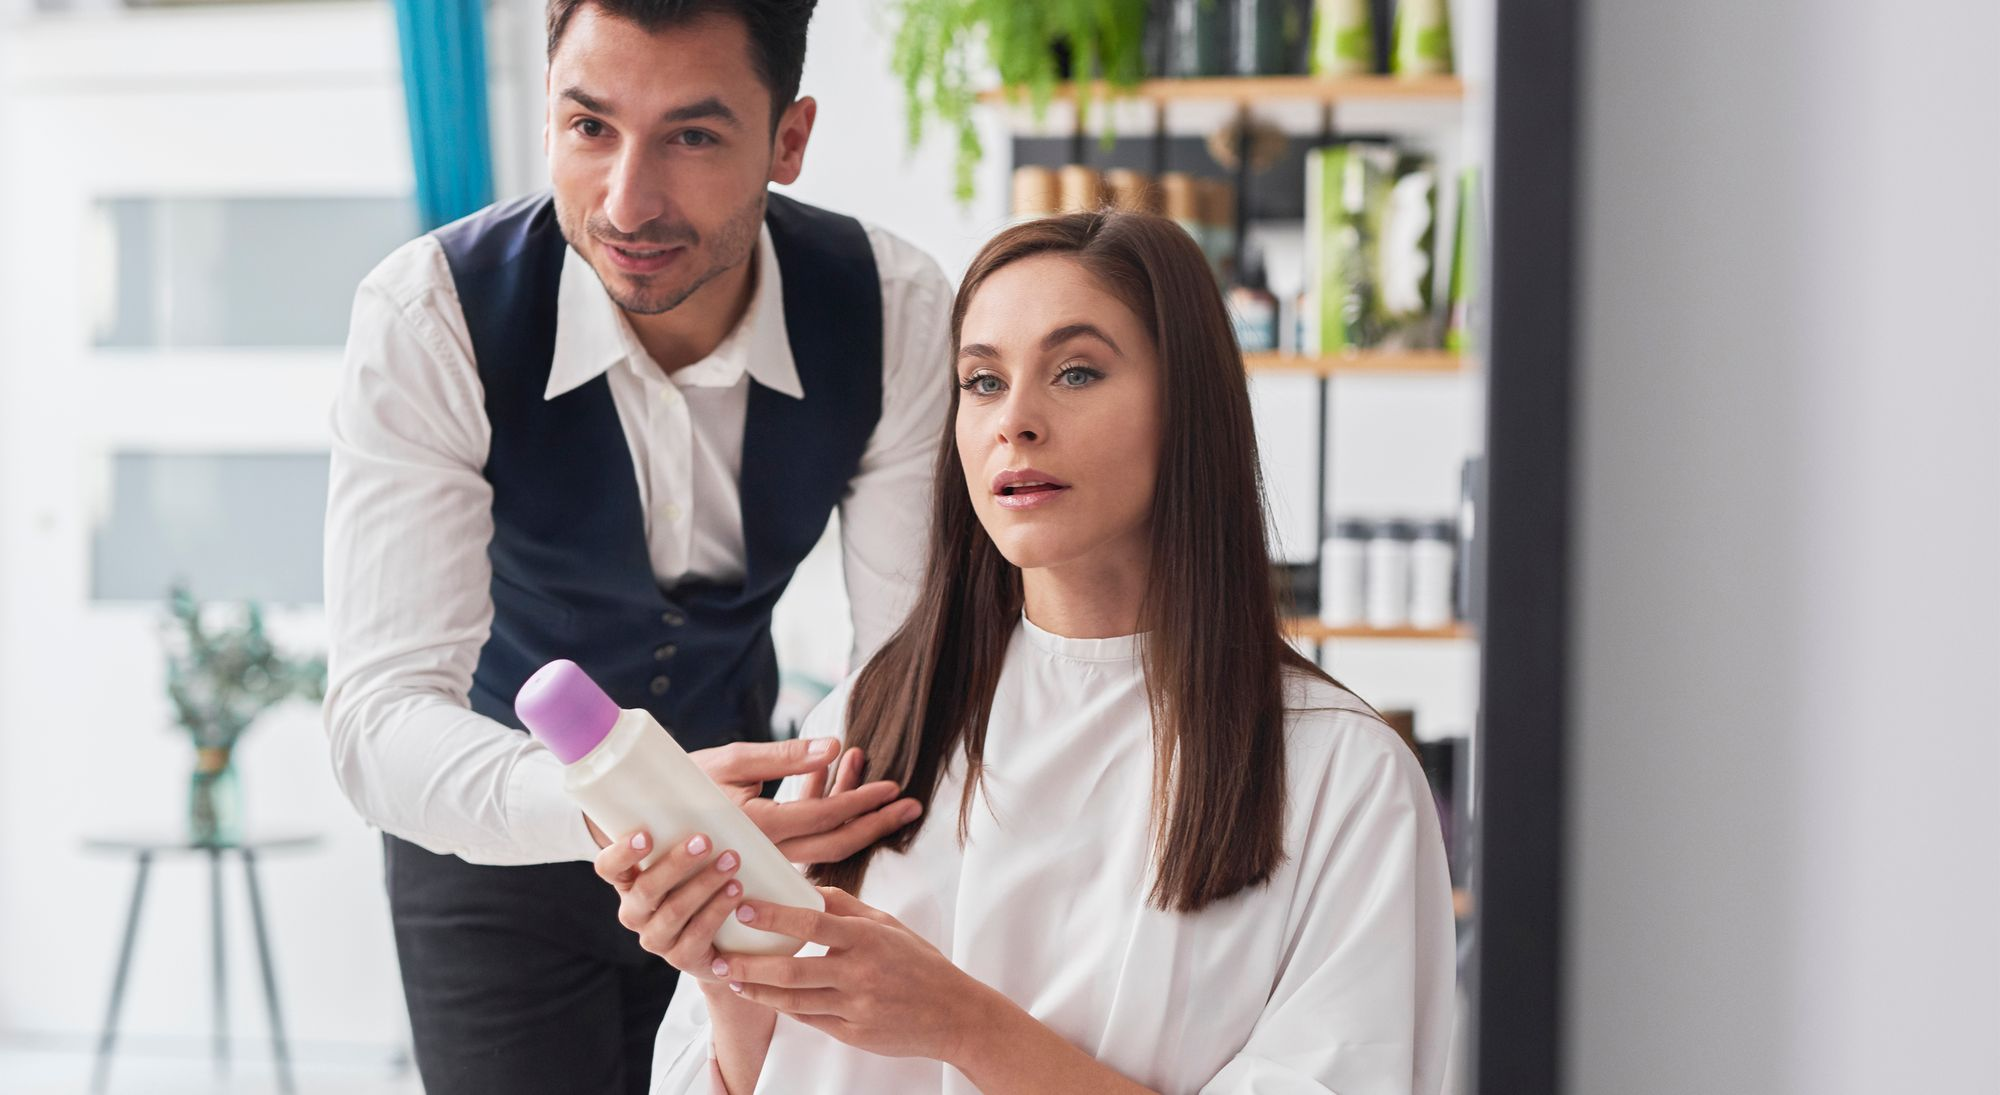 Hair stylist Creating a Connection with Client